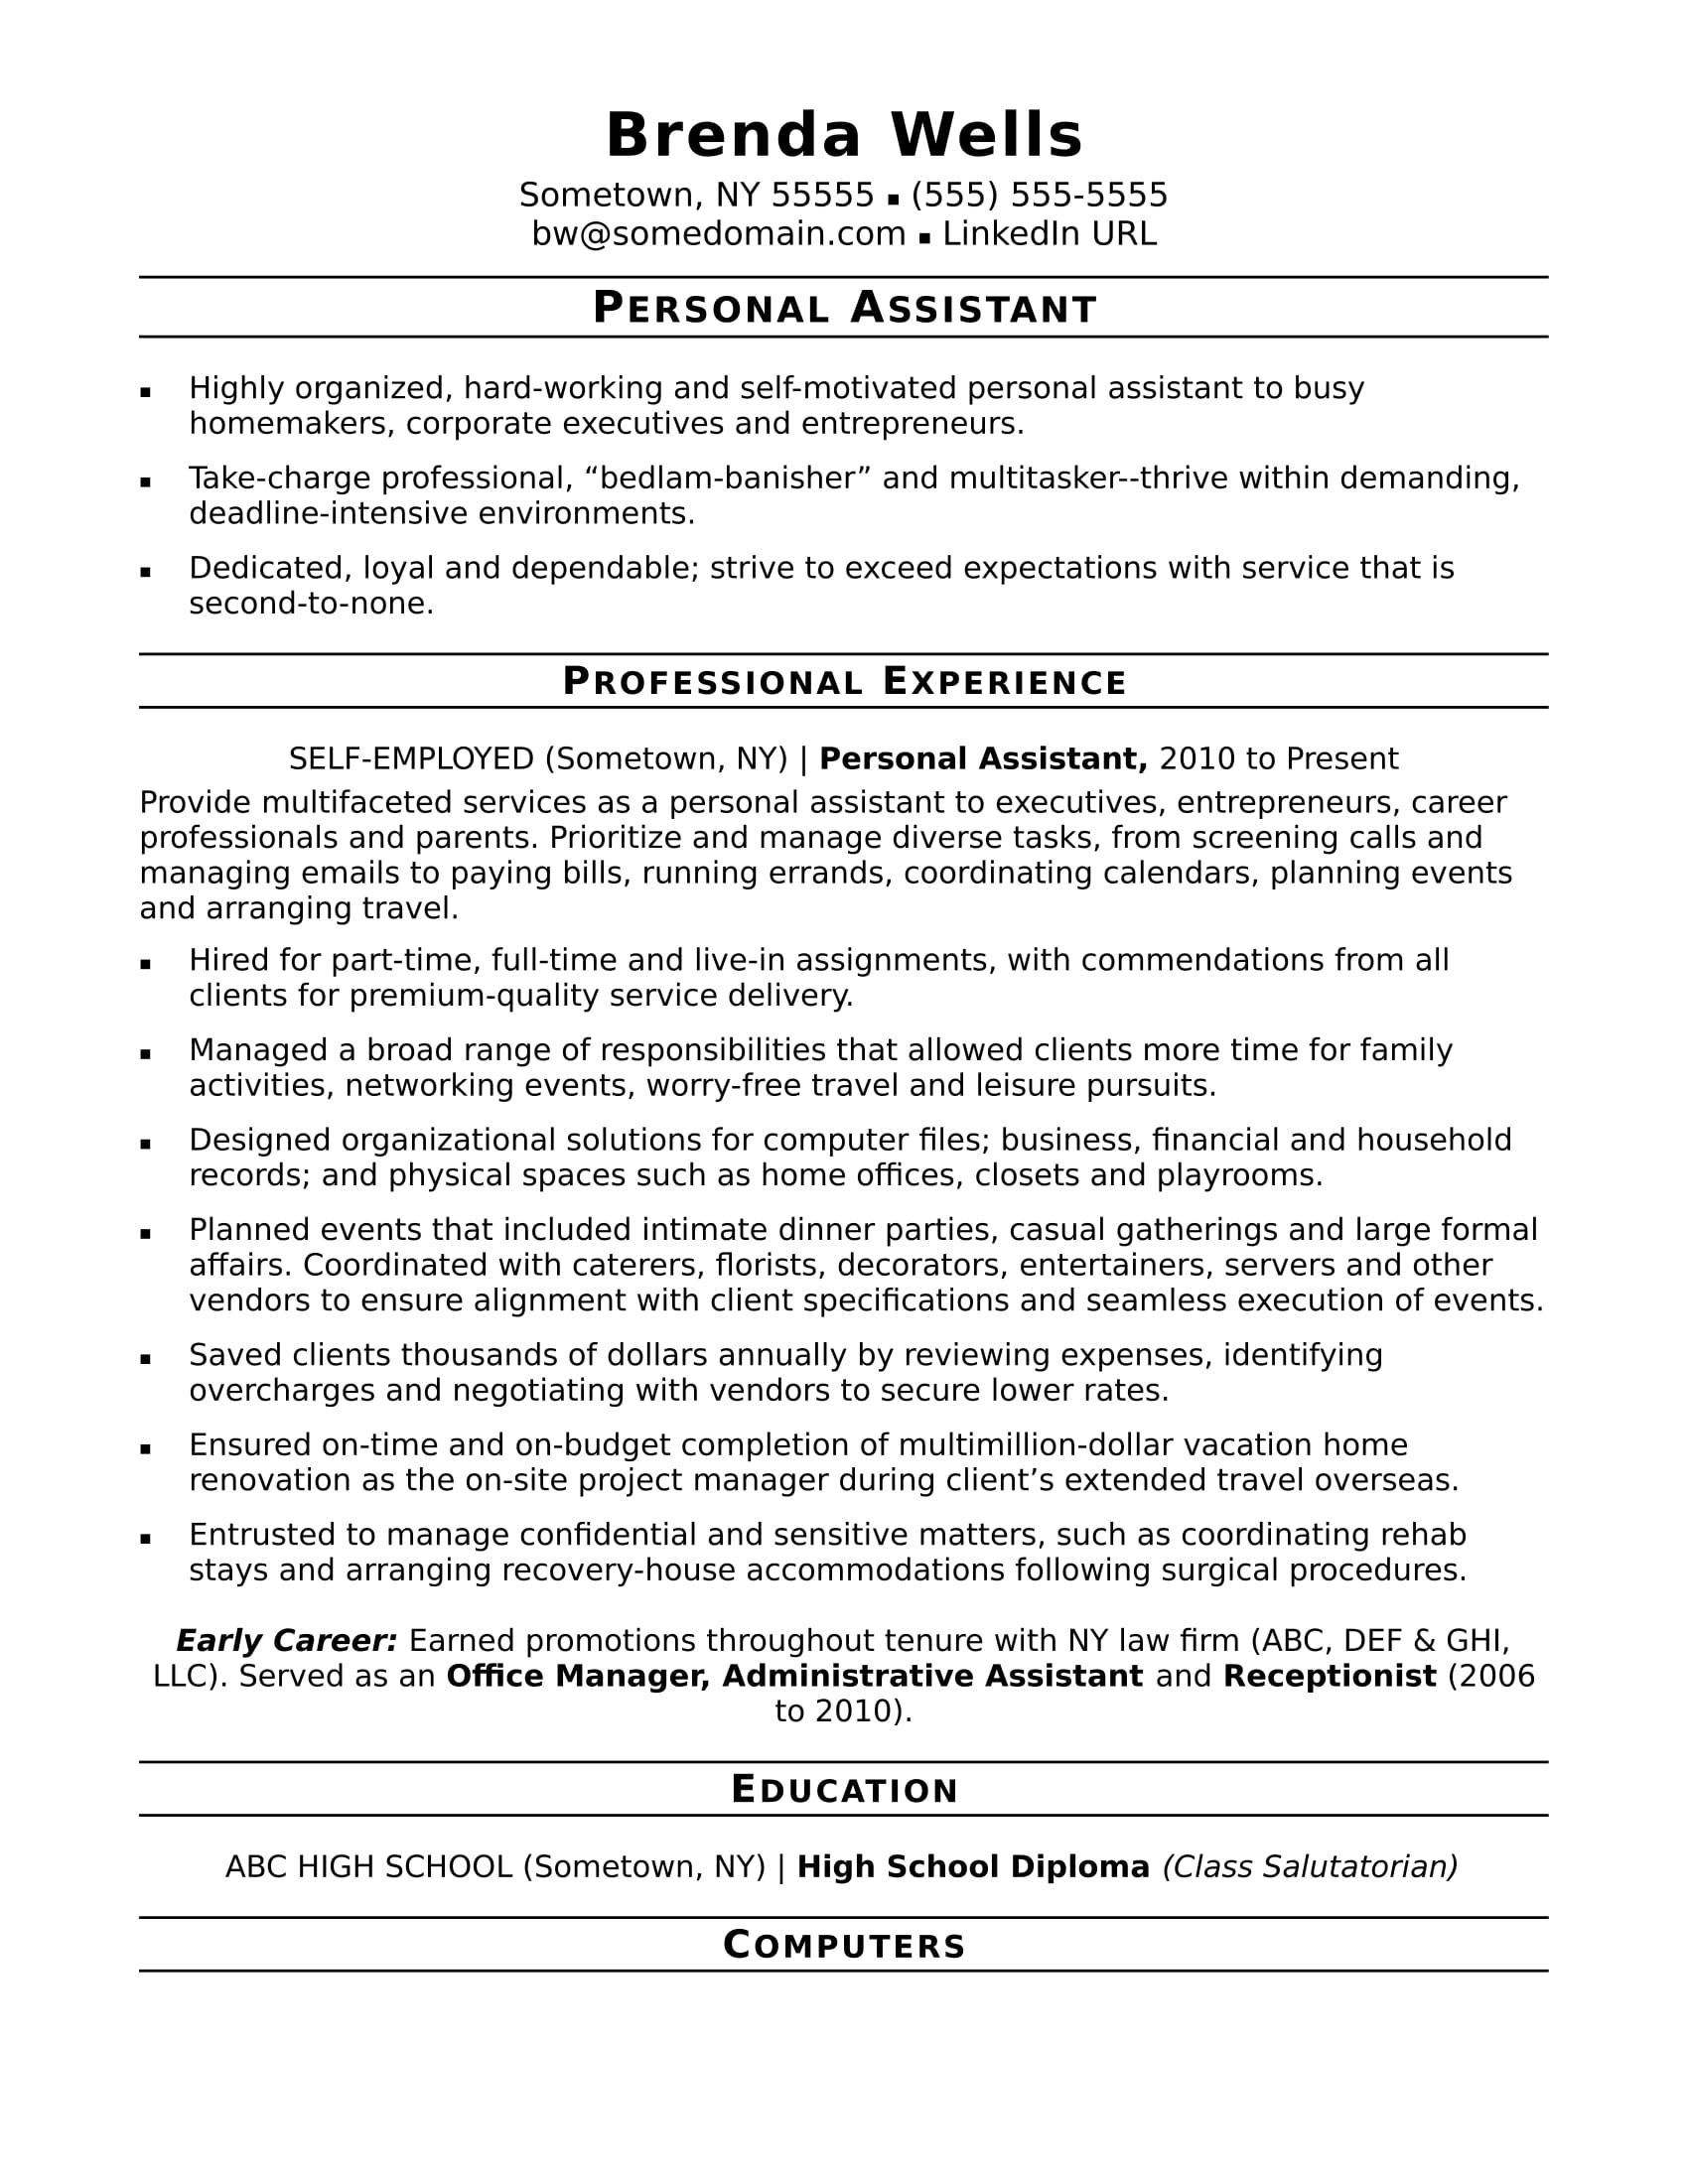 personal assistant resume sample monster experience big data for years best ats format Resume Resume Personal Experience